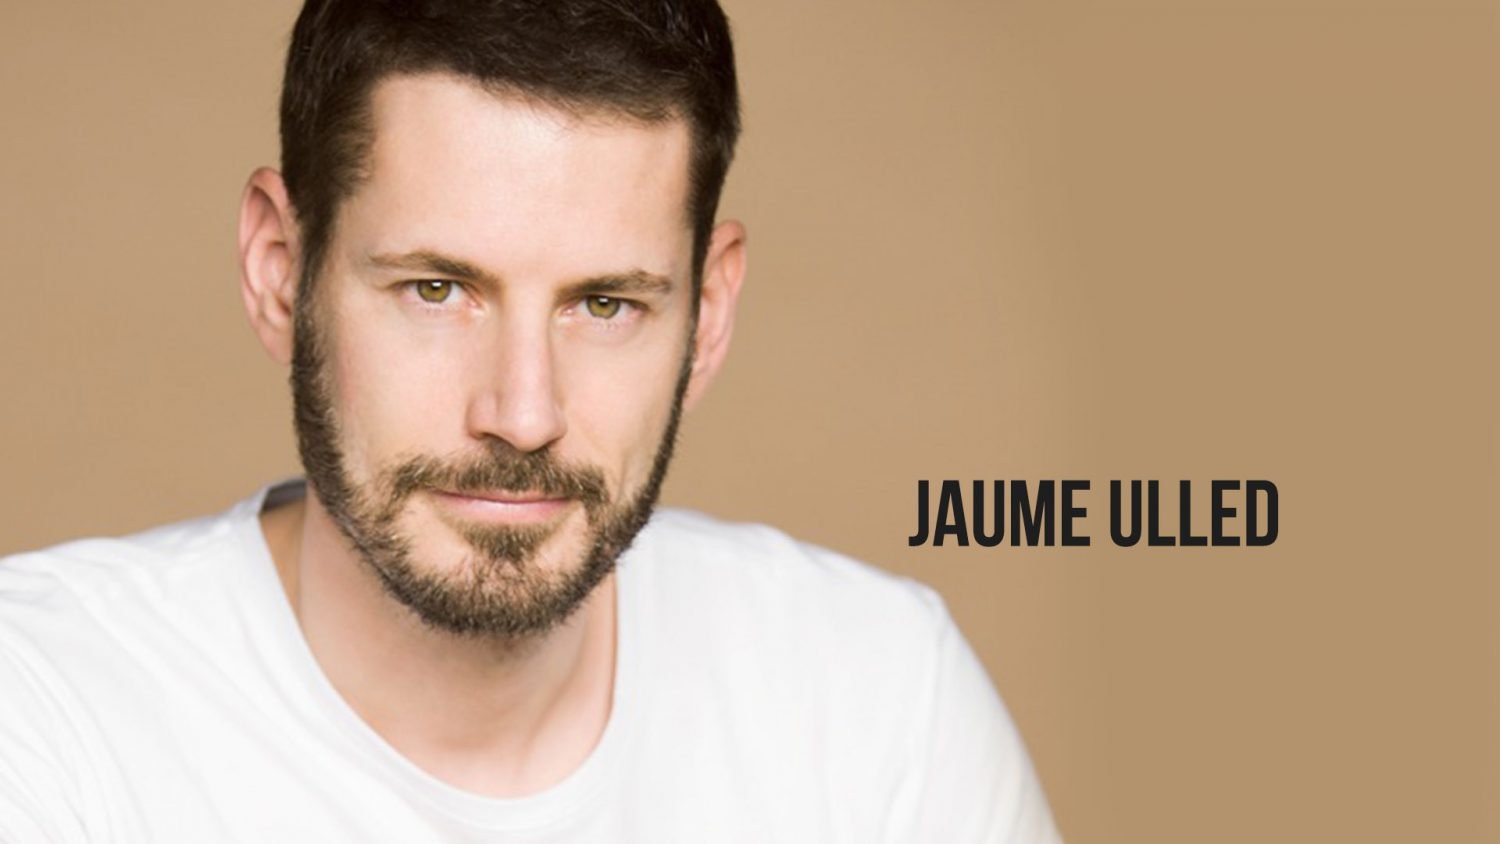 Jaume Ulled - Videobook Actor